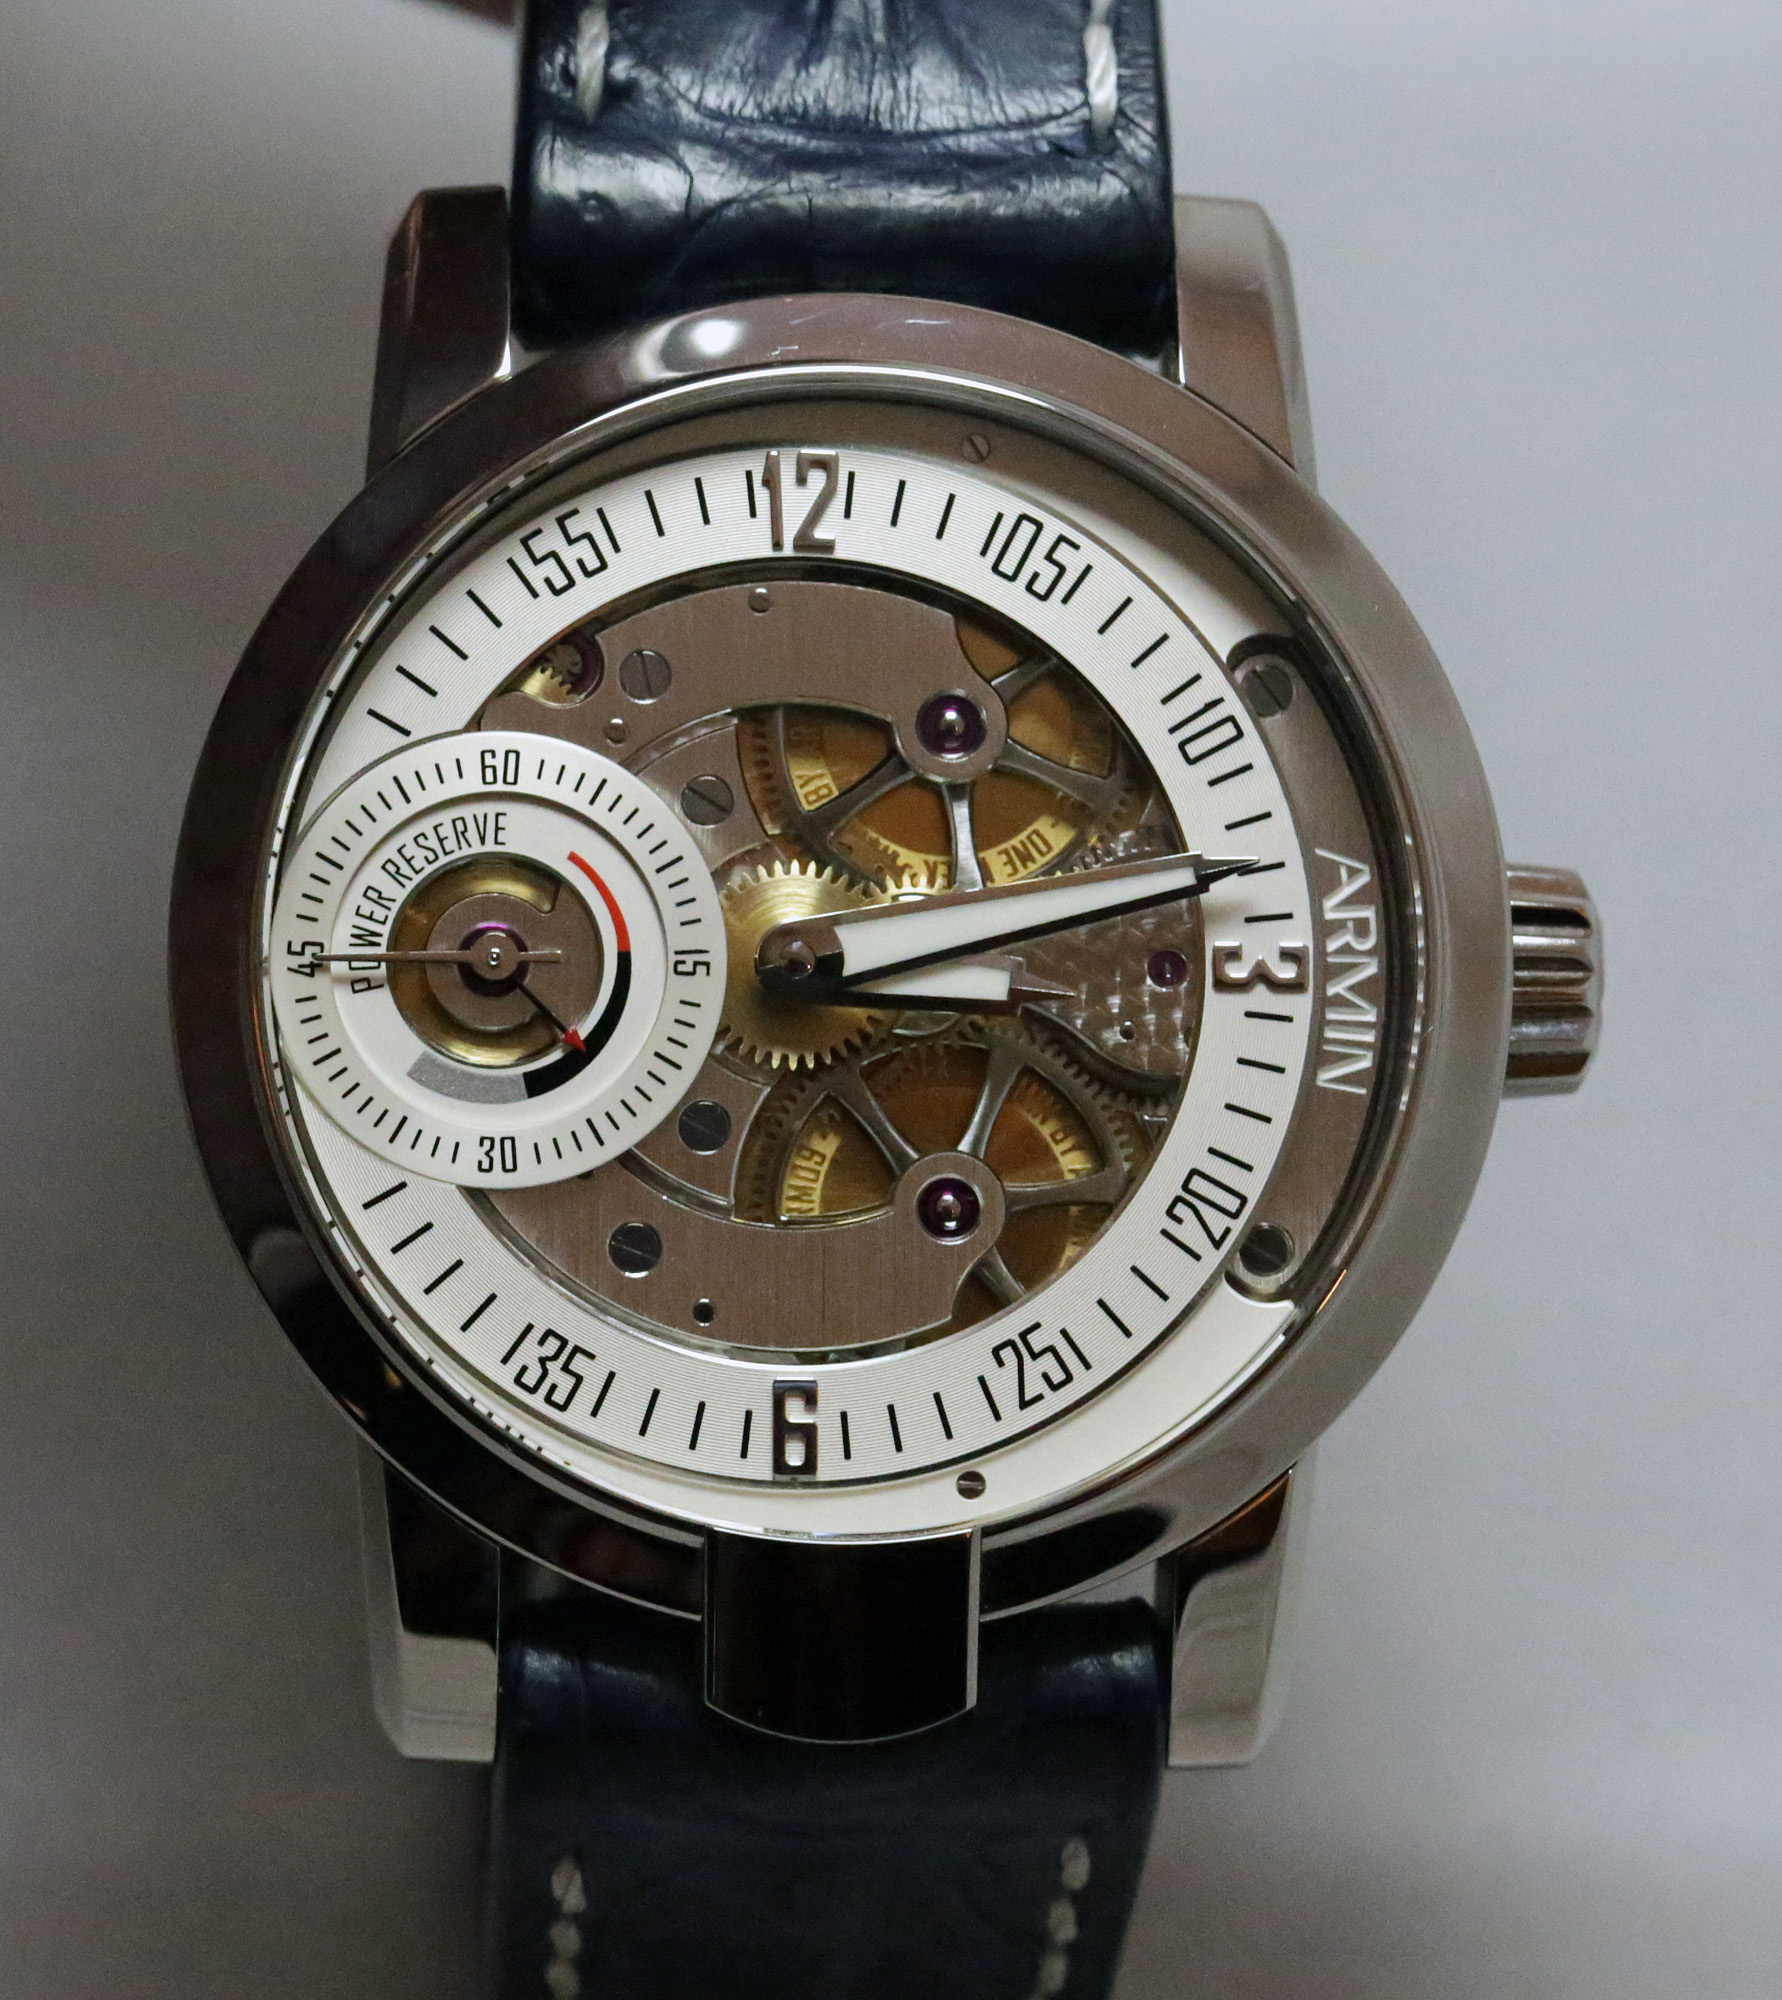 Armin Strom One Week Water - Dial